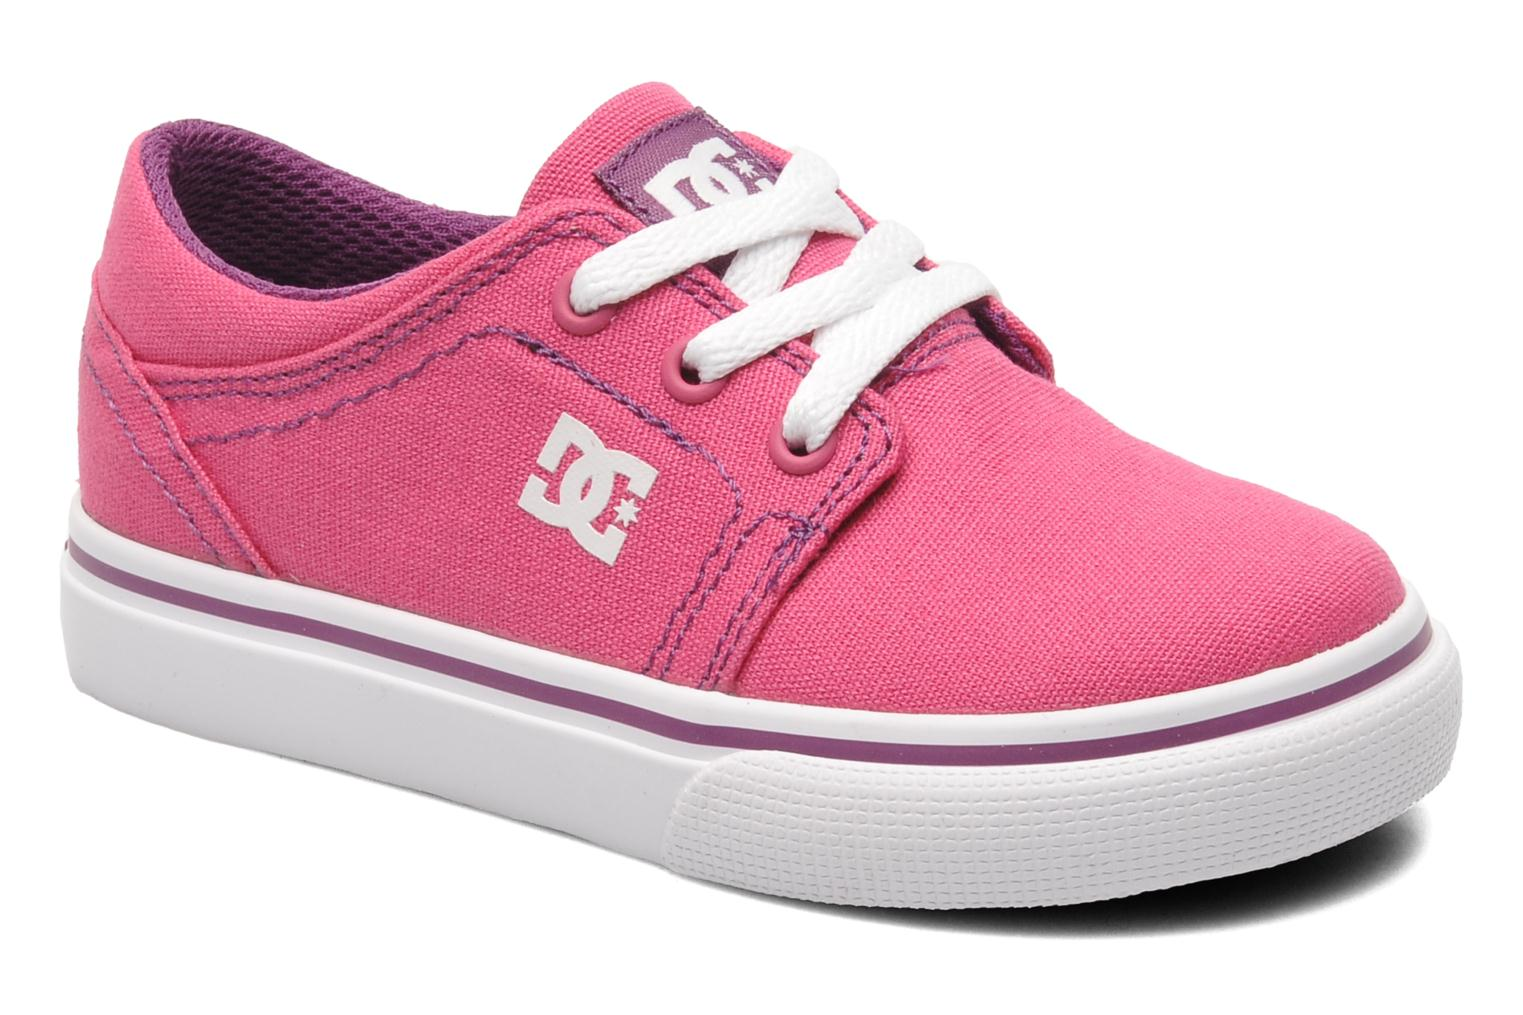 TRASE TX Toddler by DC Shoes